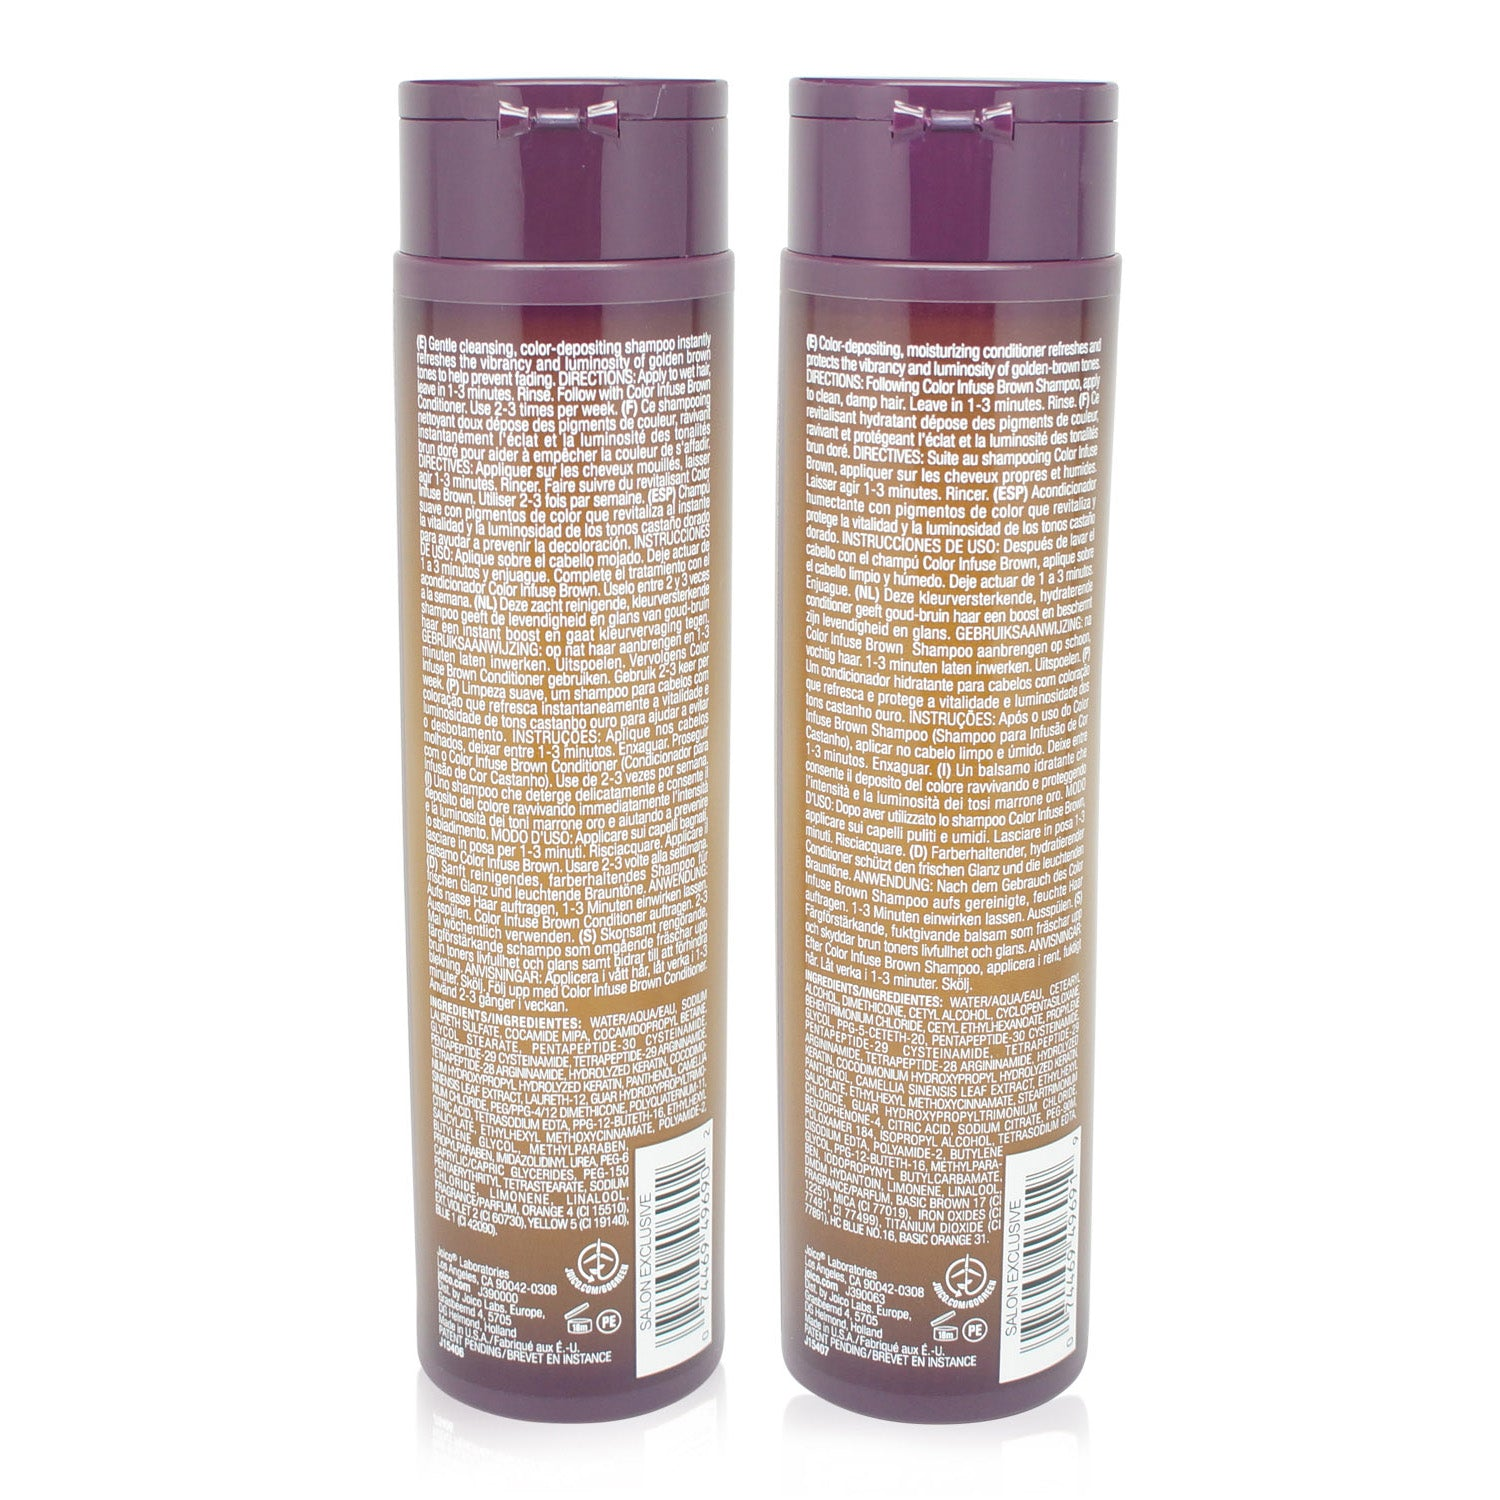 Joico Color Infuse Golden Brown Shampoo & Conditioner Combo Pack 10.1 Oz each